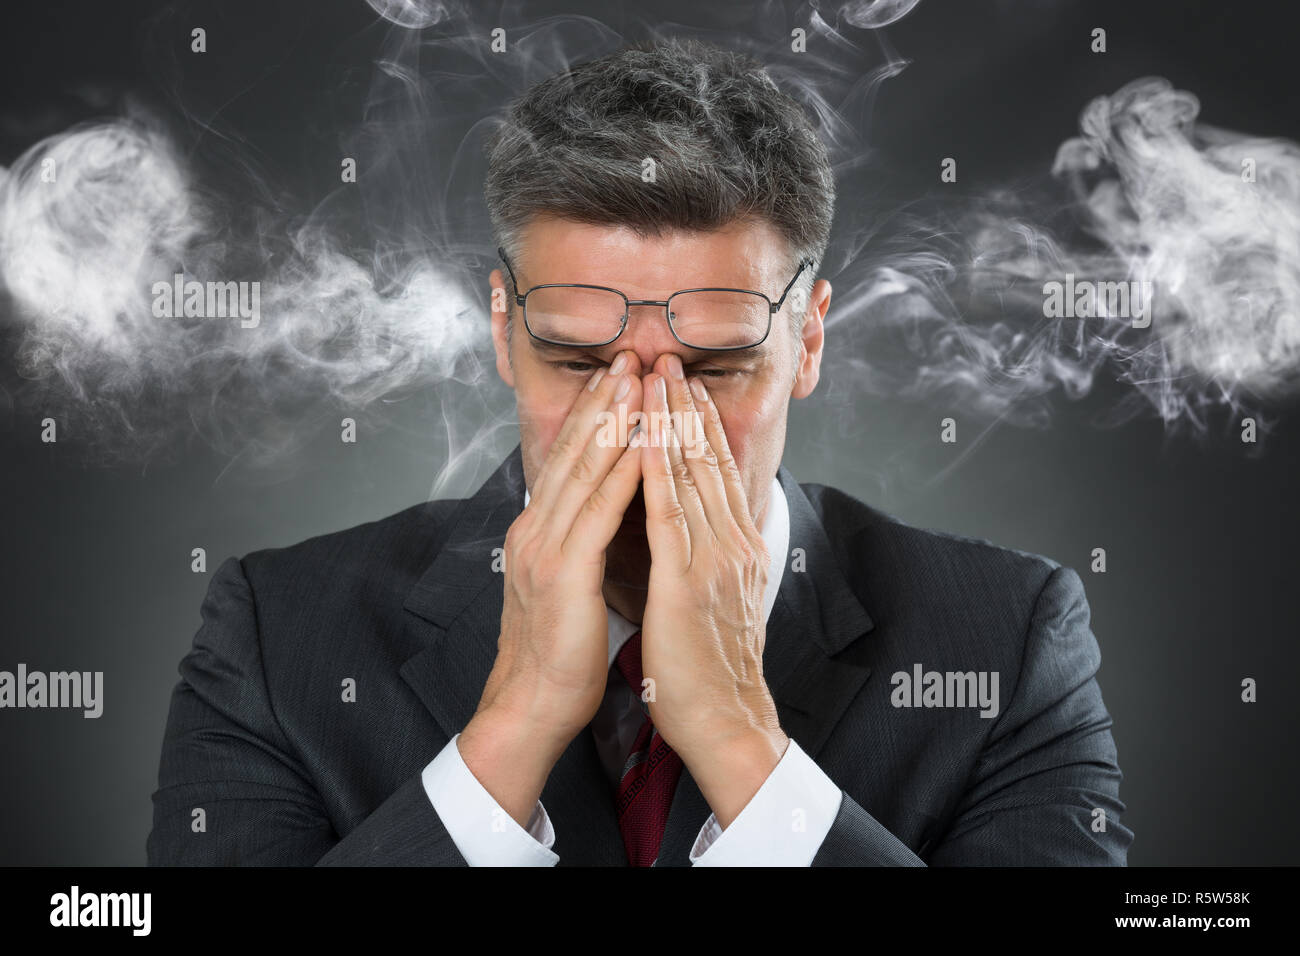 Stressed Businessman - Stock Image